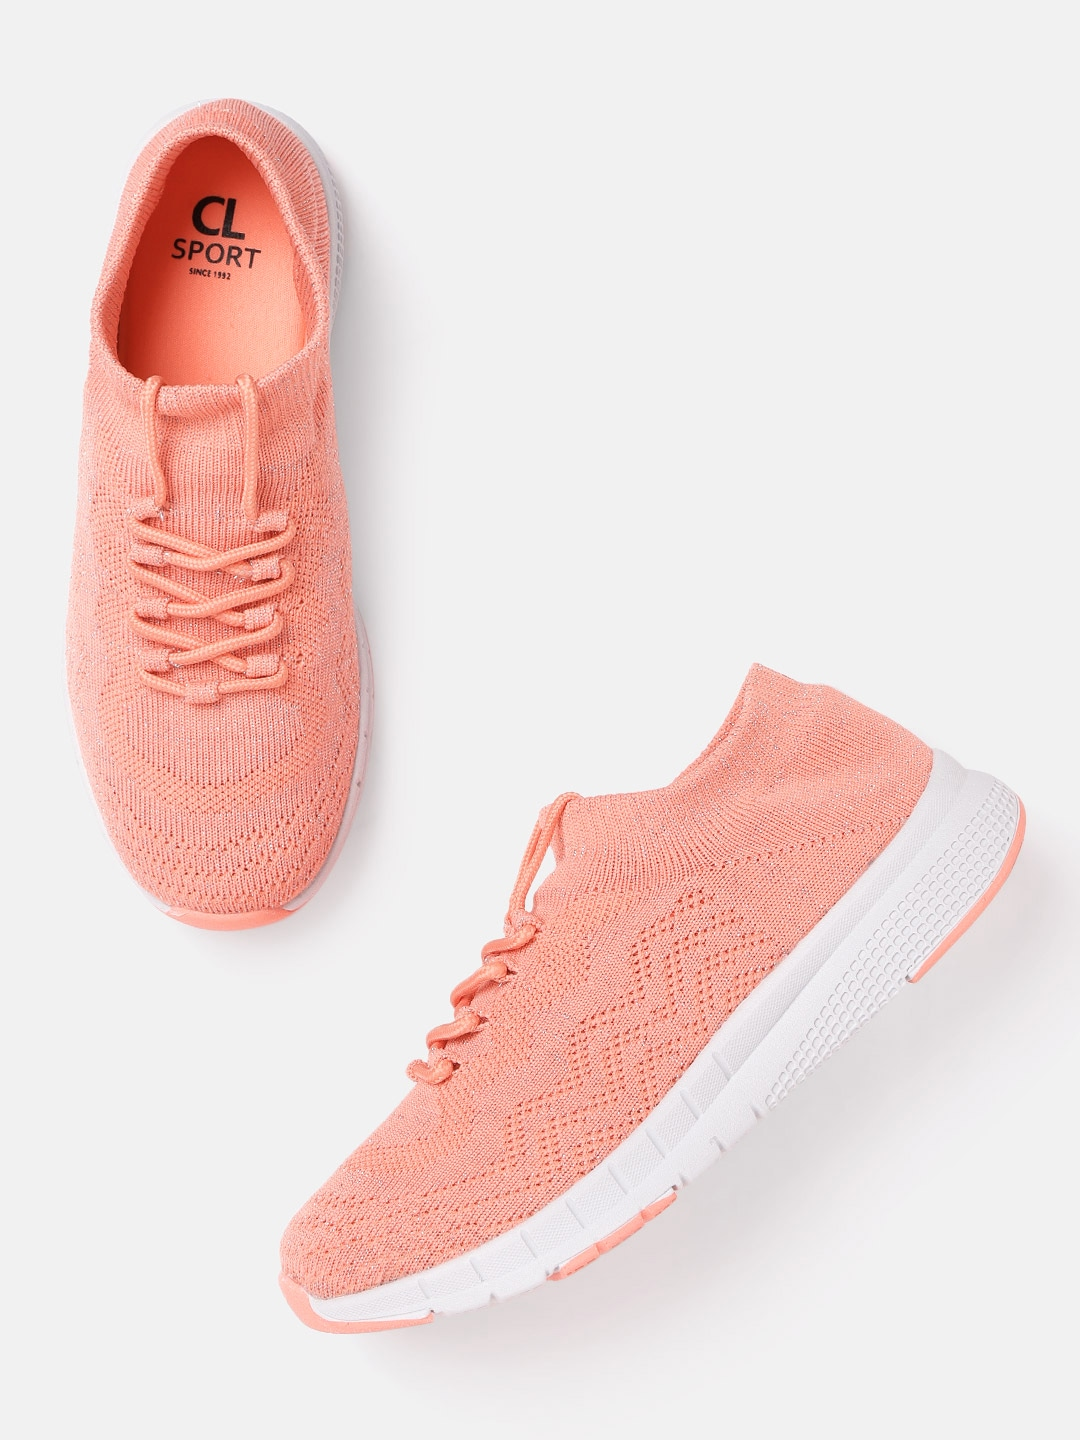 Peach-Coloured Running Shoes